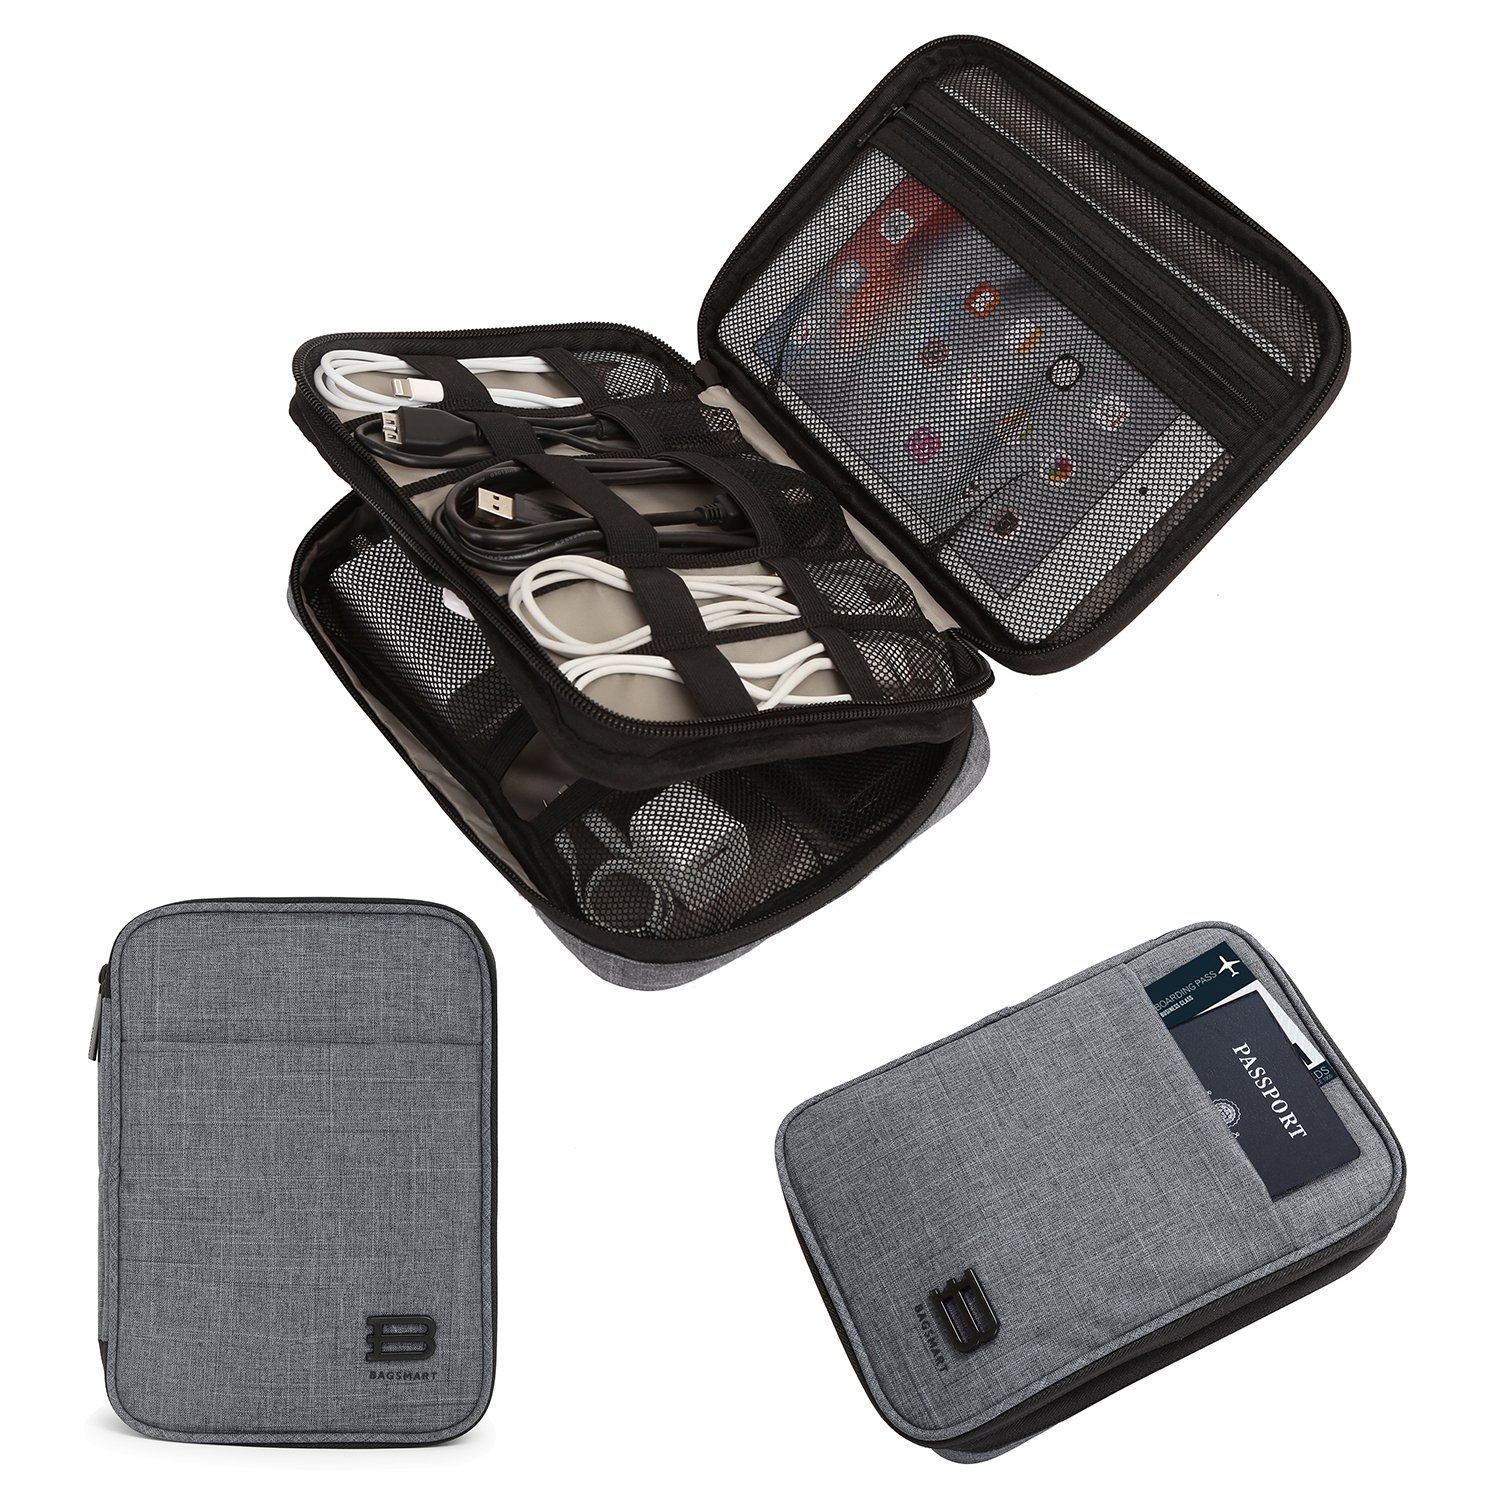 BAGSMART Double-layer Travel Cable Organizer Electronics Accessories Cases for cables, iphone, kindle charge, camera charger, macbook charger, Grey